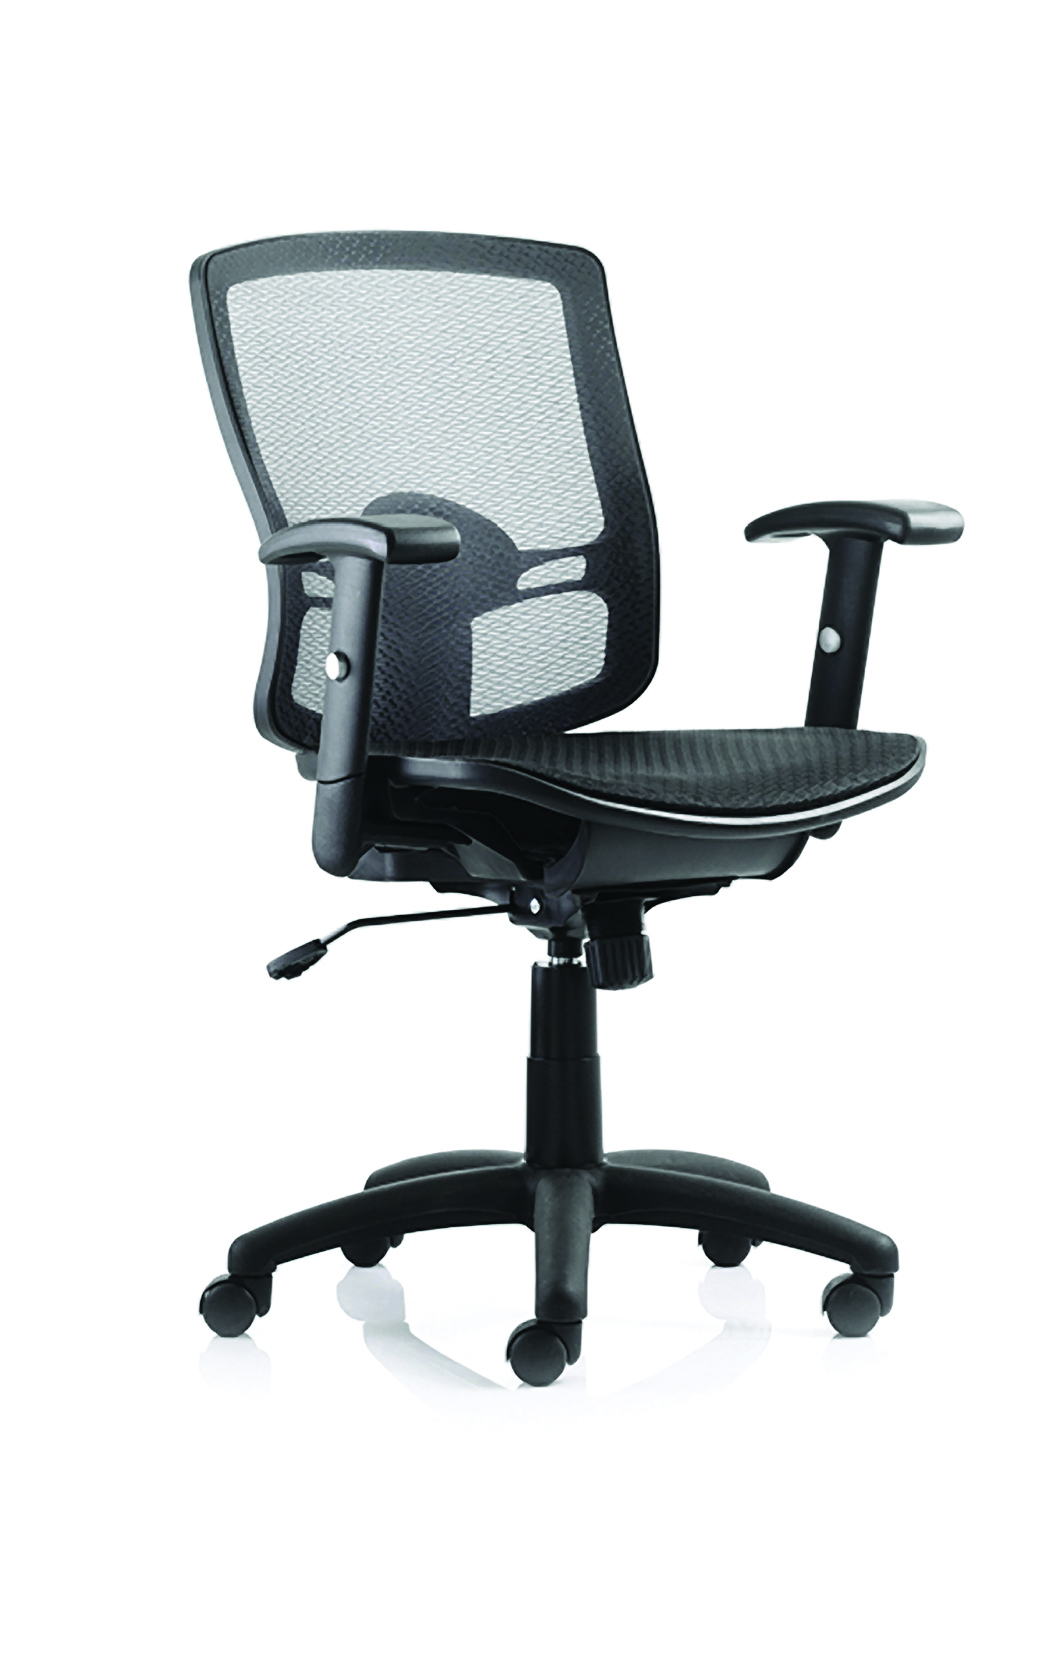 Desk Chairs Palma Chair Black Mesh Back Black With Arms OP000104